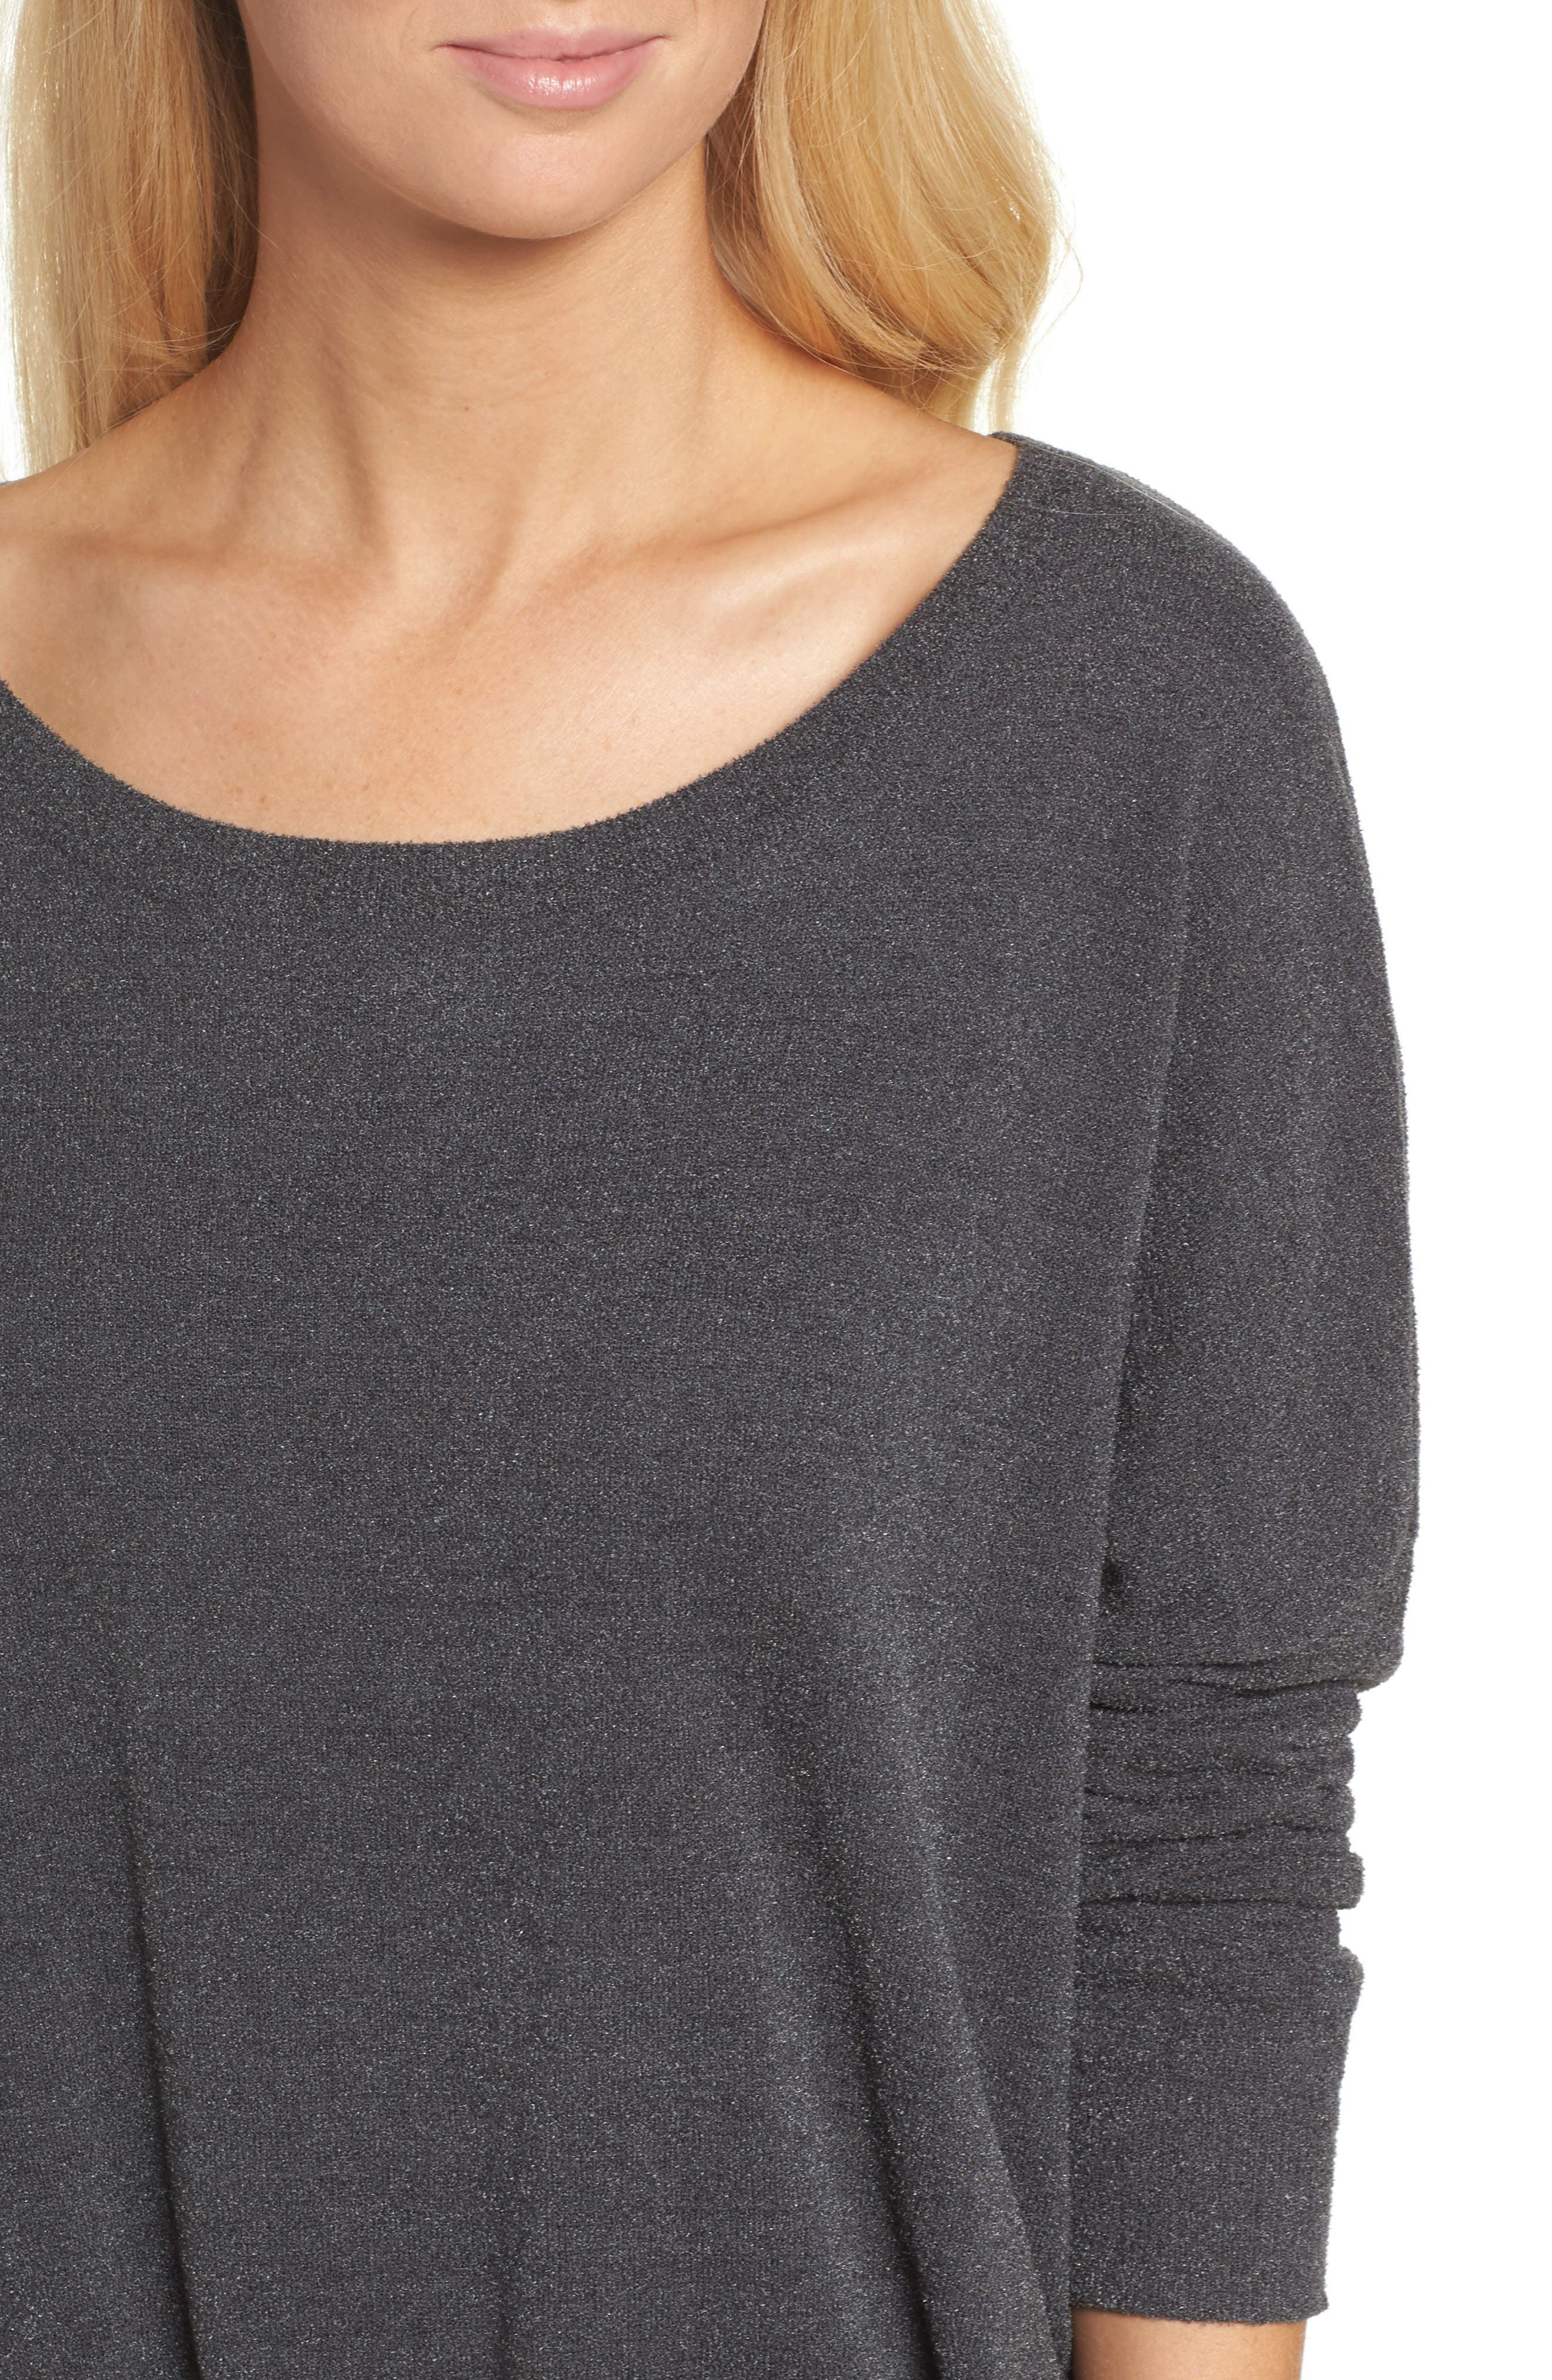 Cozychic Ultra Lite<sup>®</sup> Lounge Pullover,                             Alternate thumbnail 4, color,                             CARBON